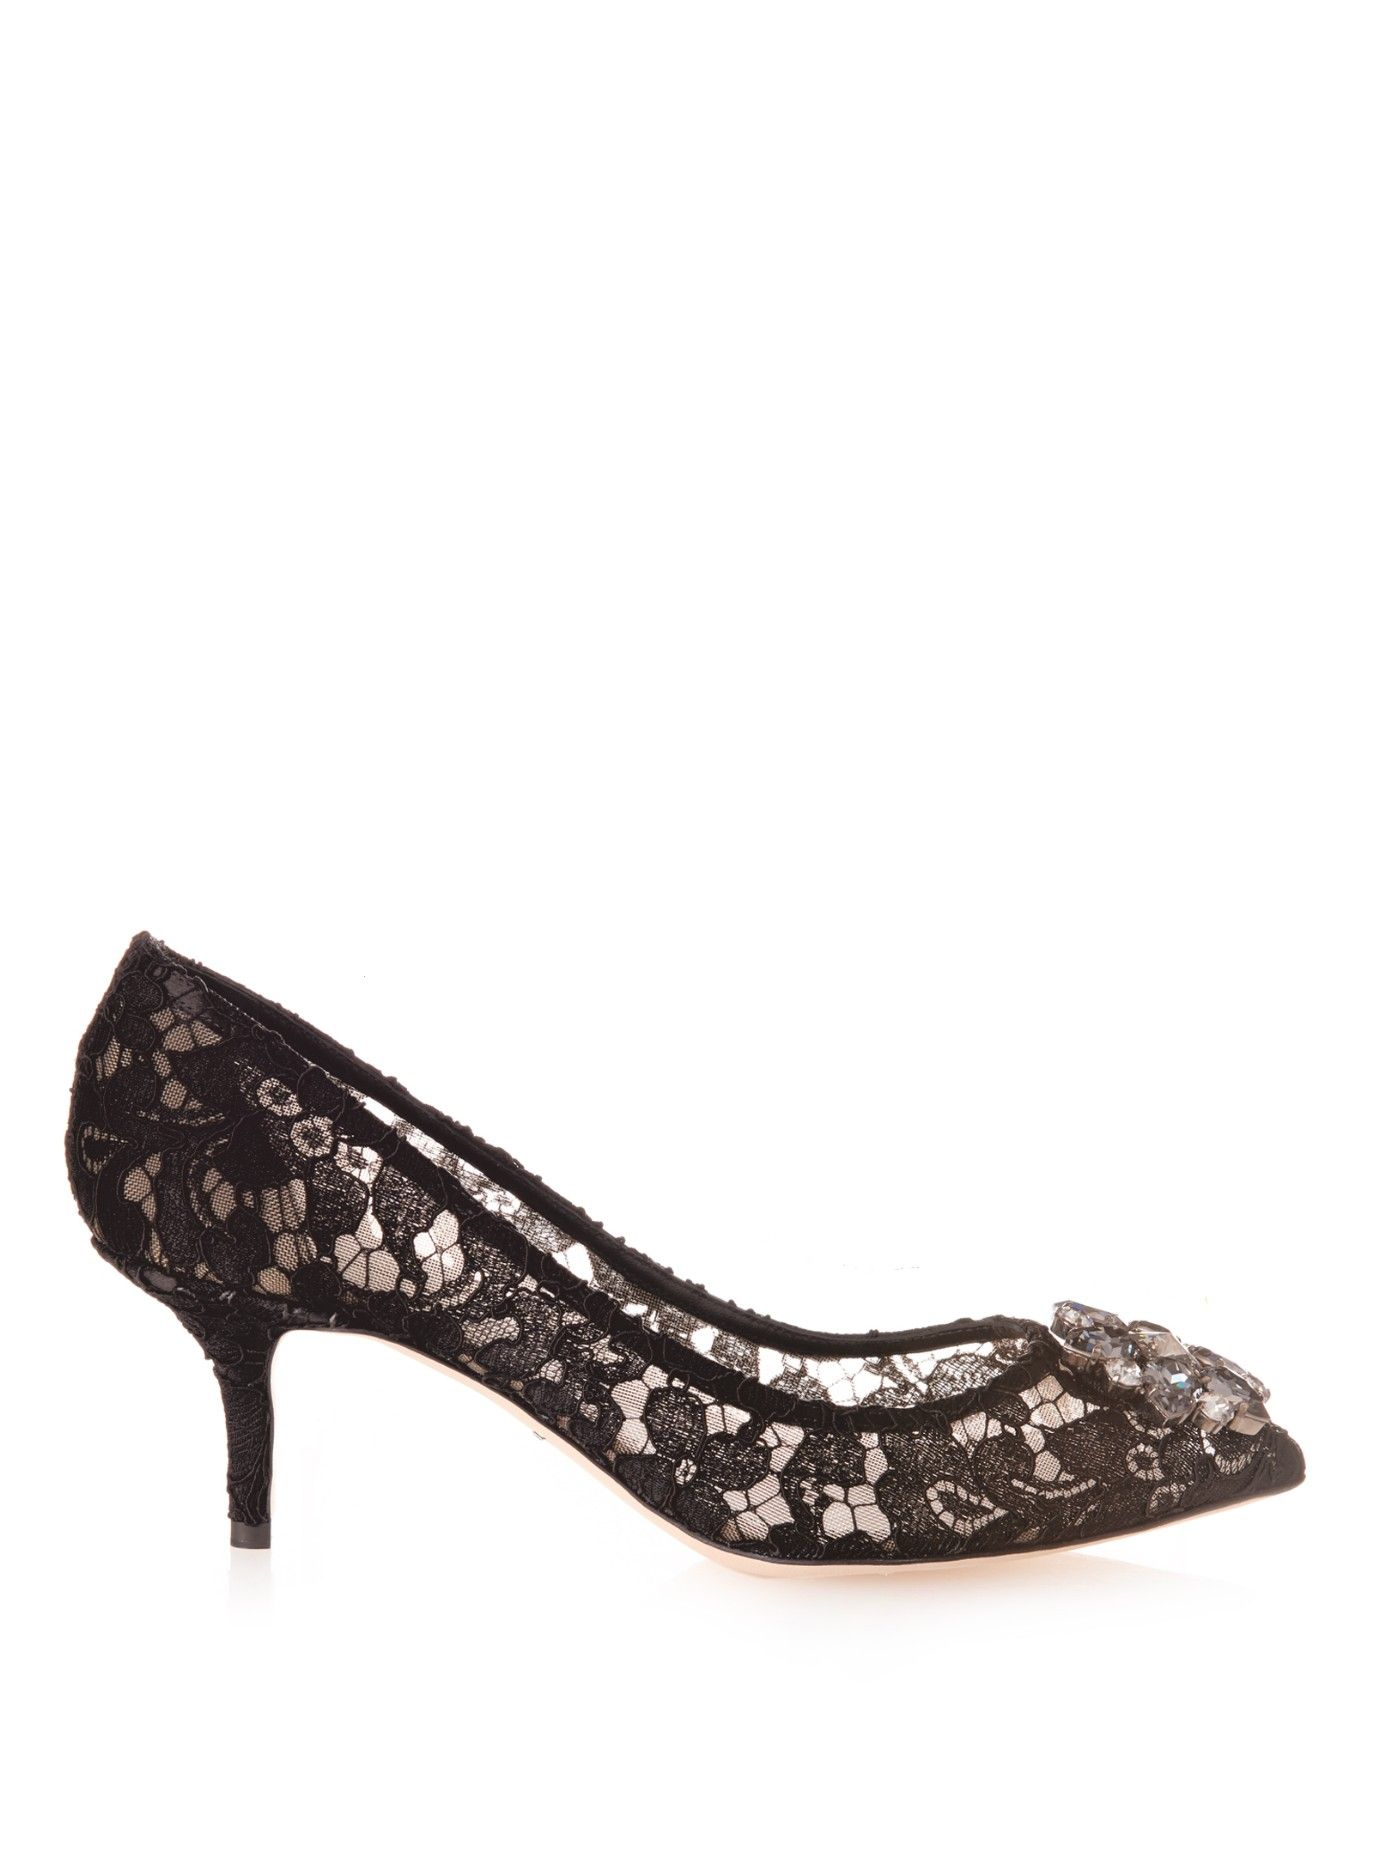 Embellished lace pumps by Dolce & Gabbana | Shop now at #MATCHESFASHION.COM